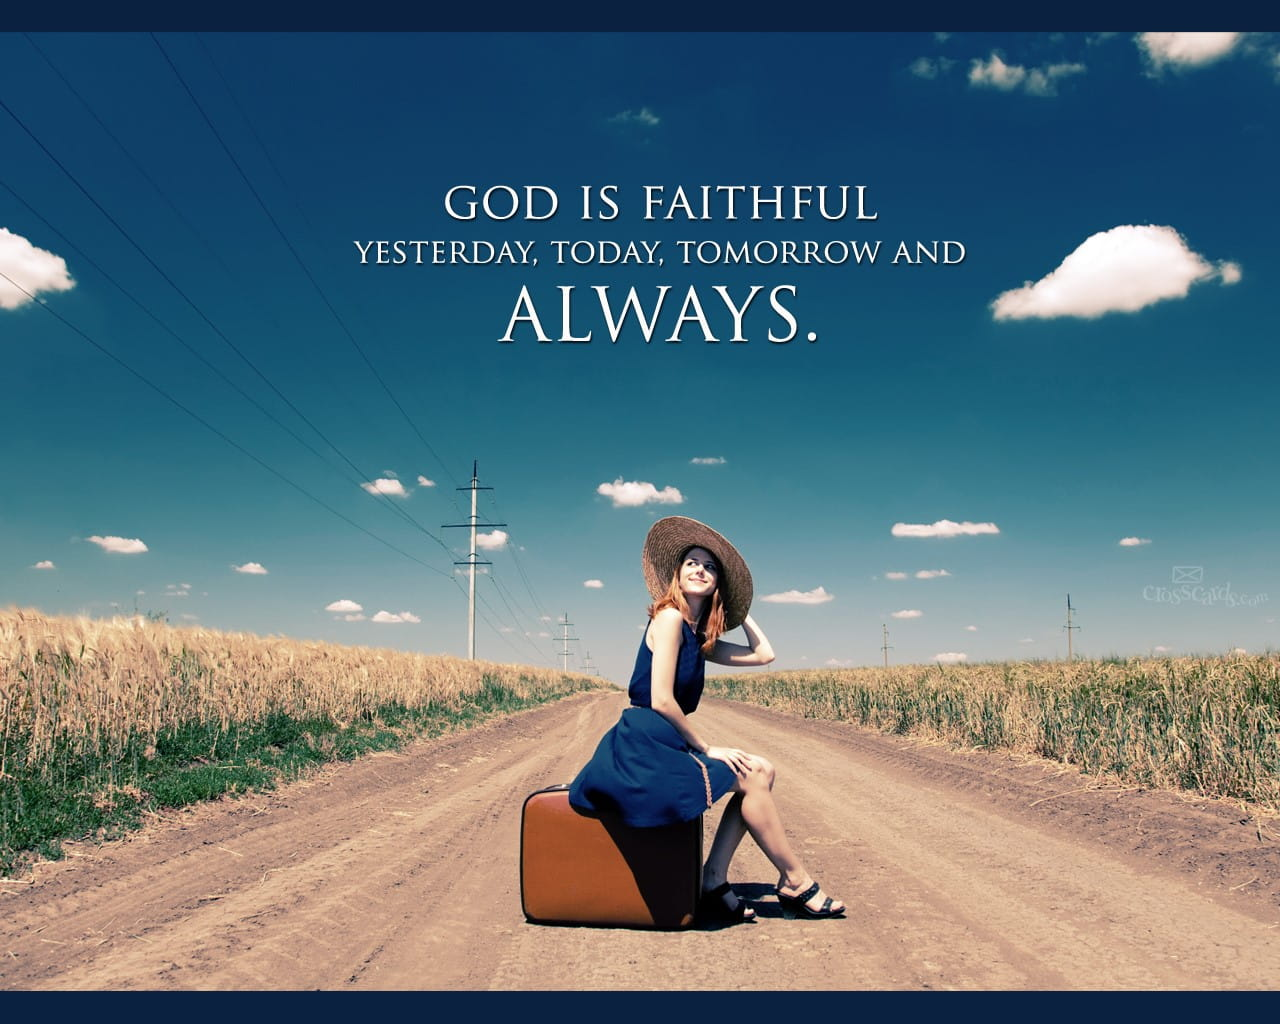 Faithful god wallpaper free landscapes desktop backgrounds - Crosscards christian wallpaper ...